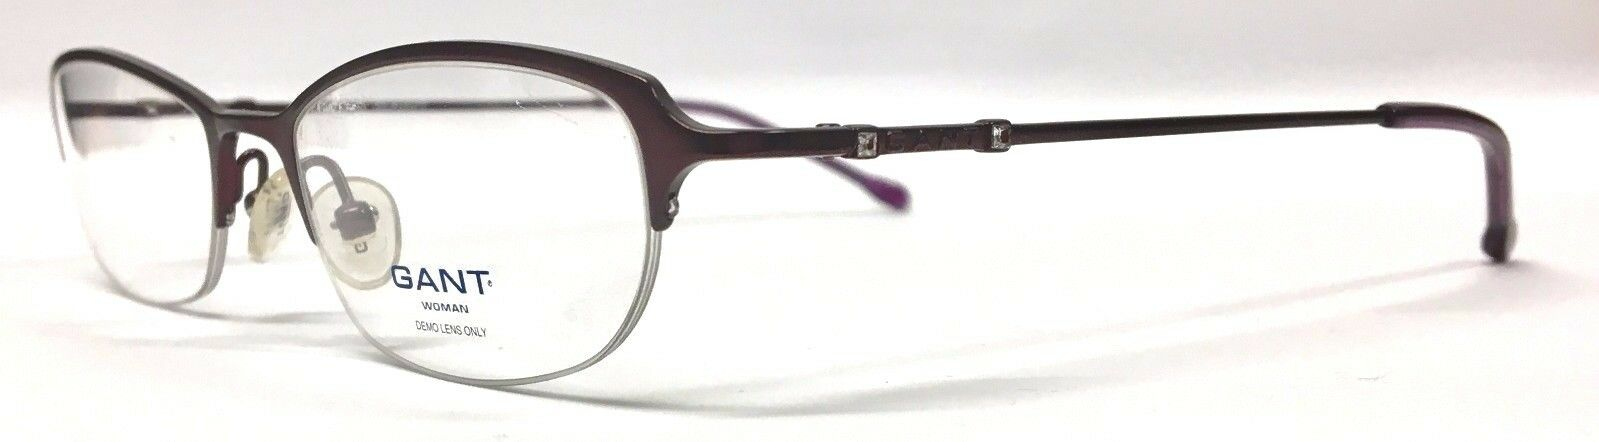 NEW GANT GLASSES Frames GW NINA (Burgundy/ Purple) Ex-Display ...